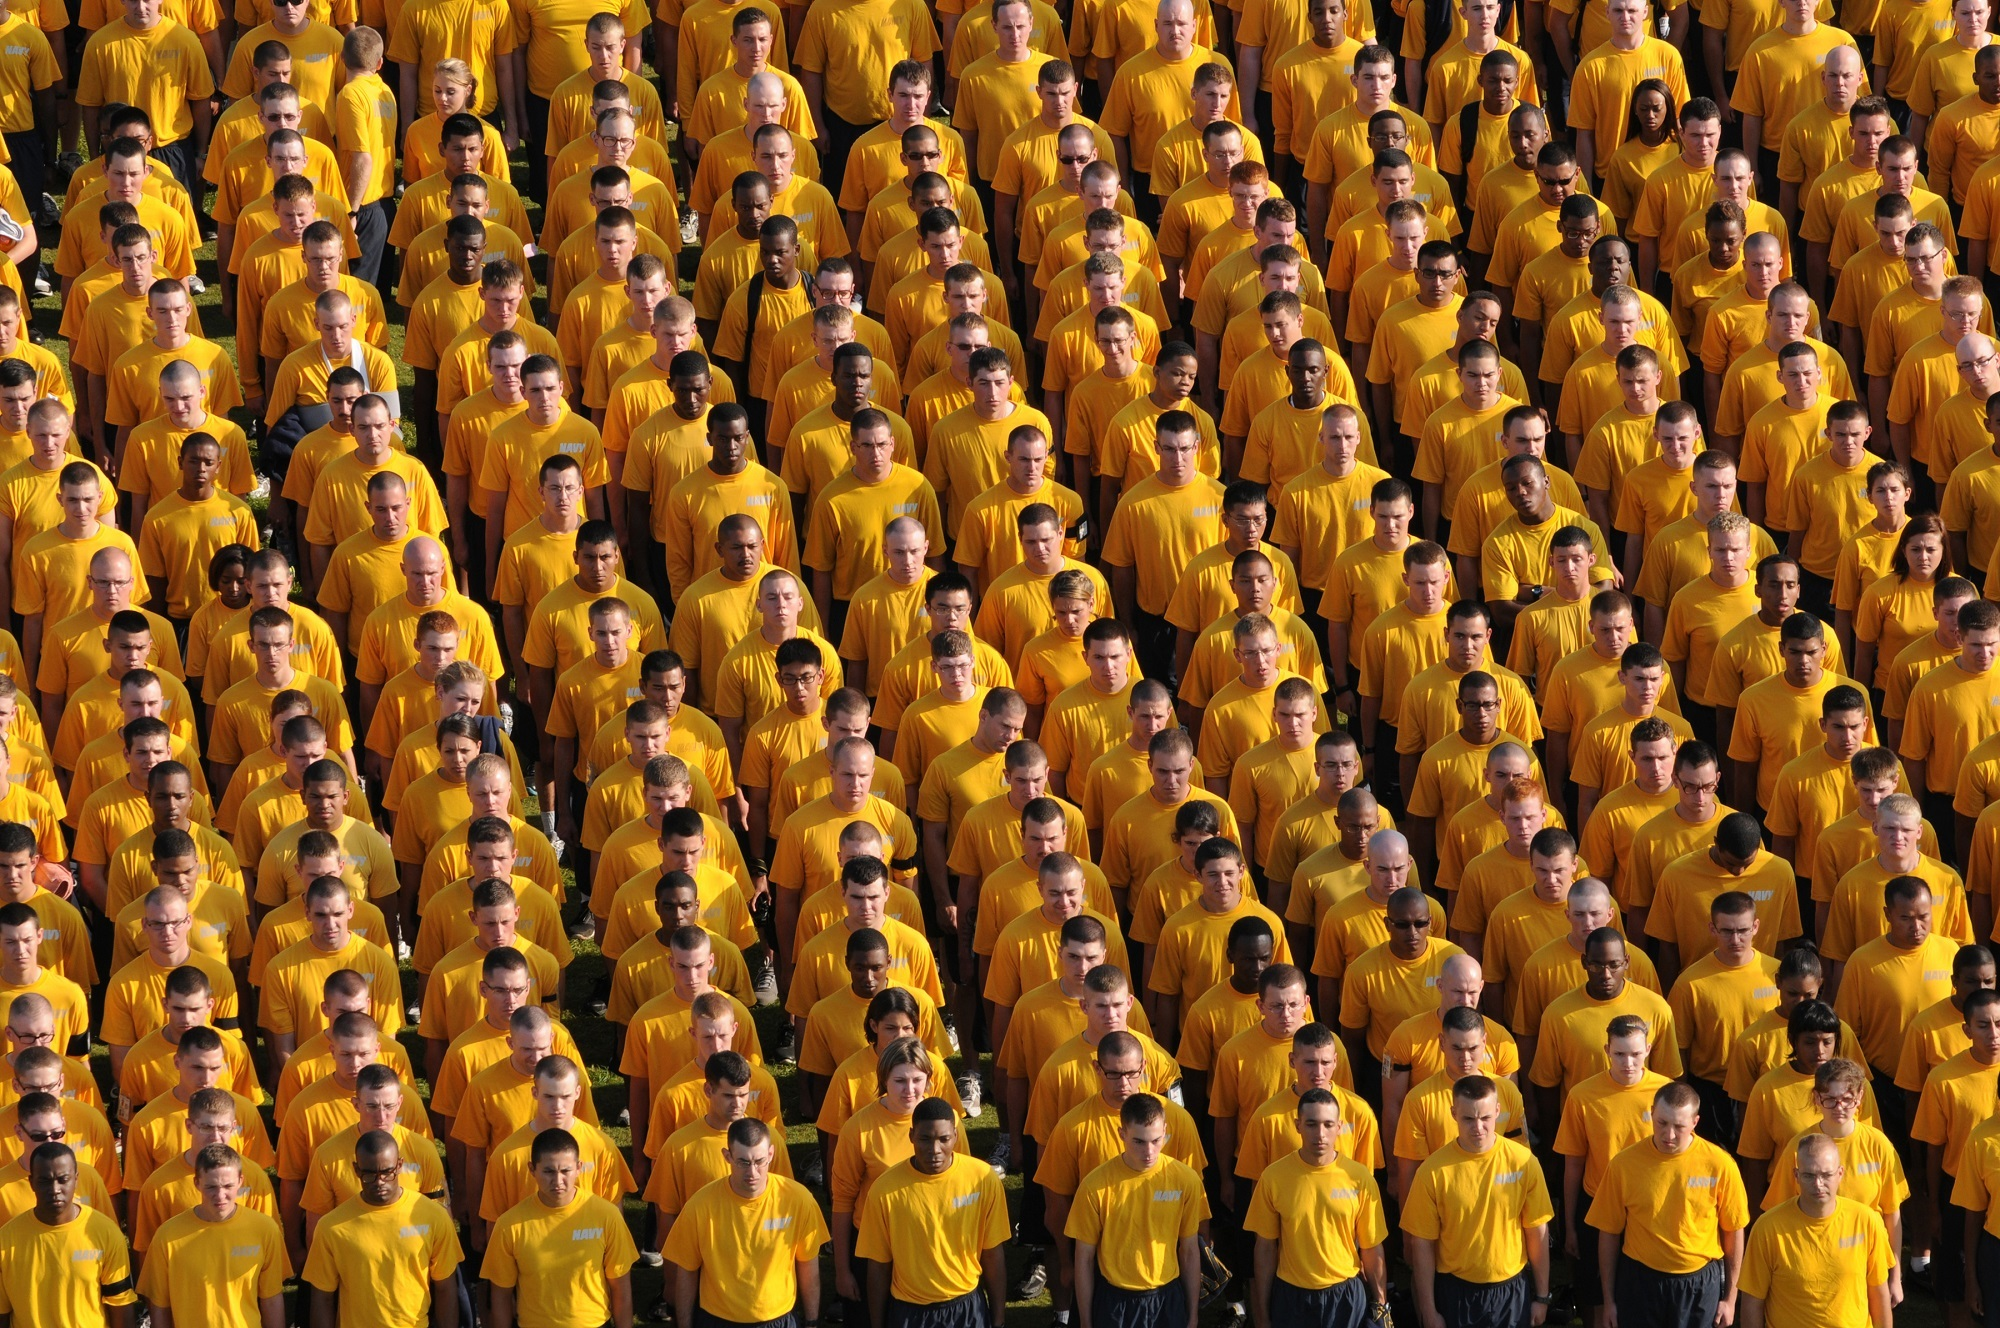 tips to stand out in the crowd - job 30 days